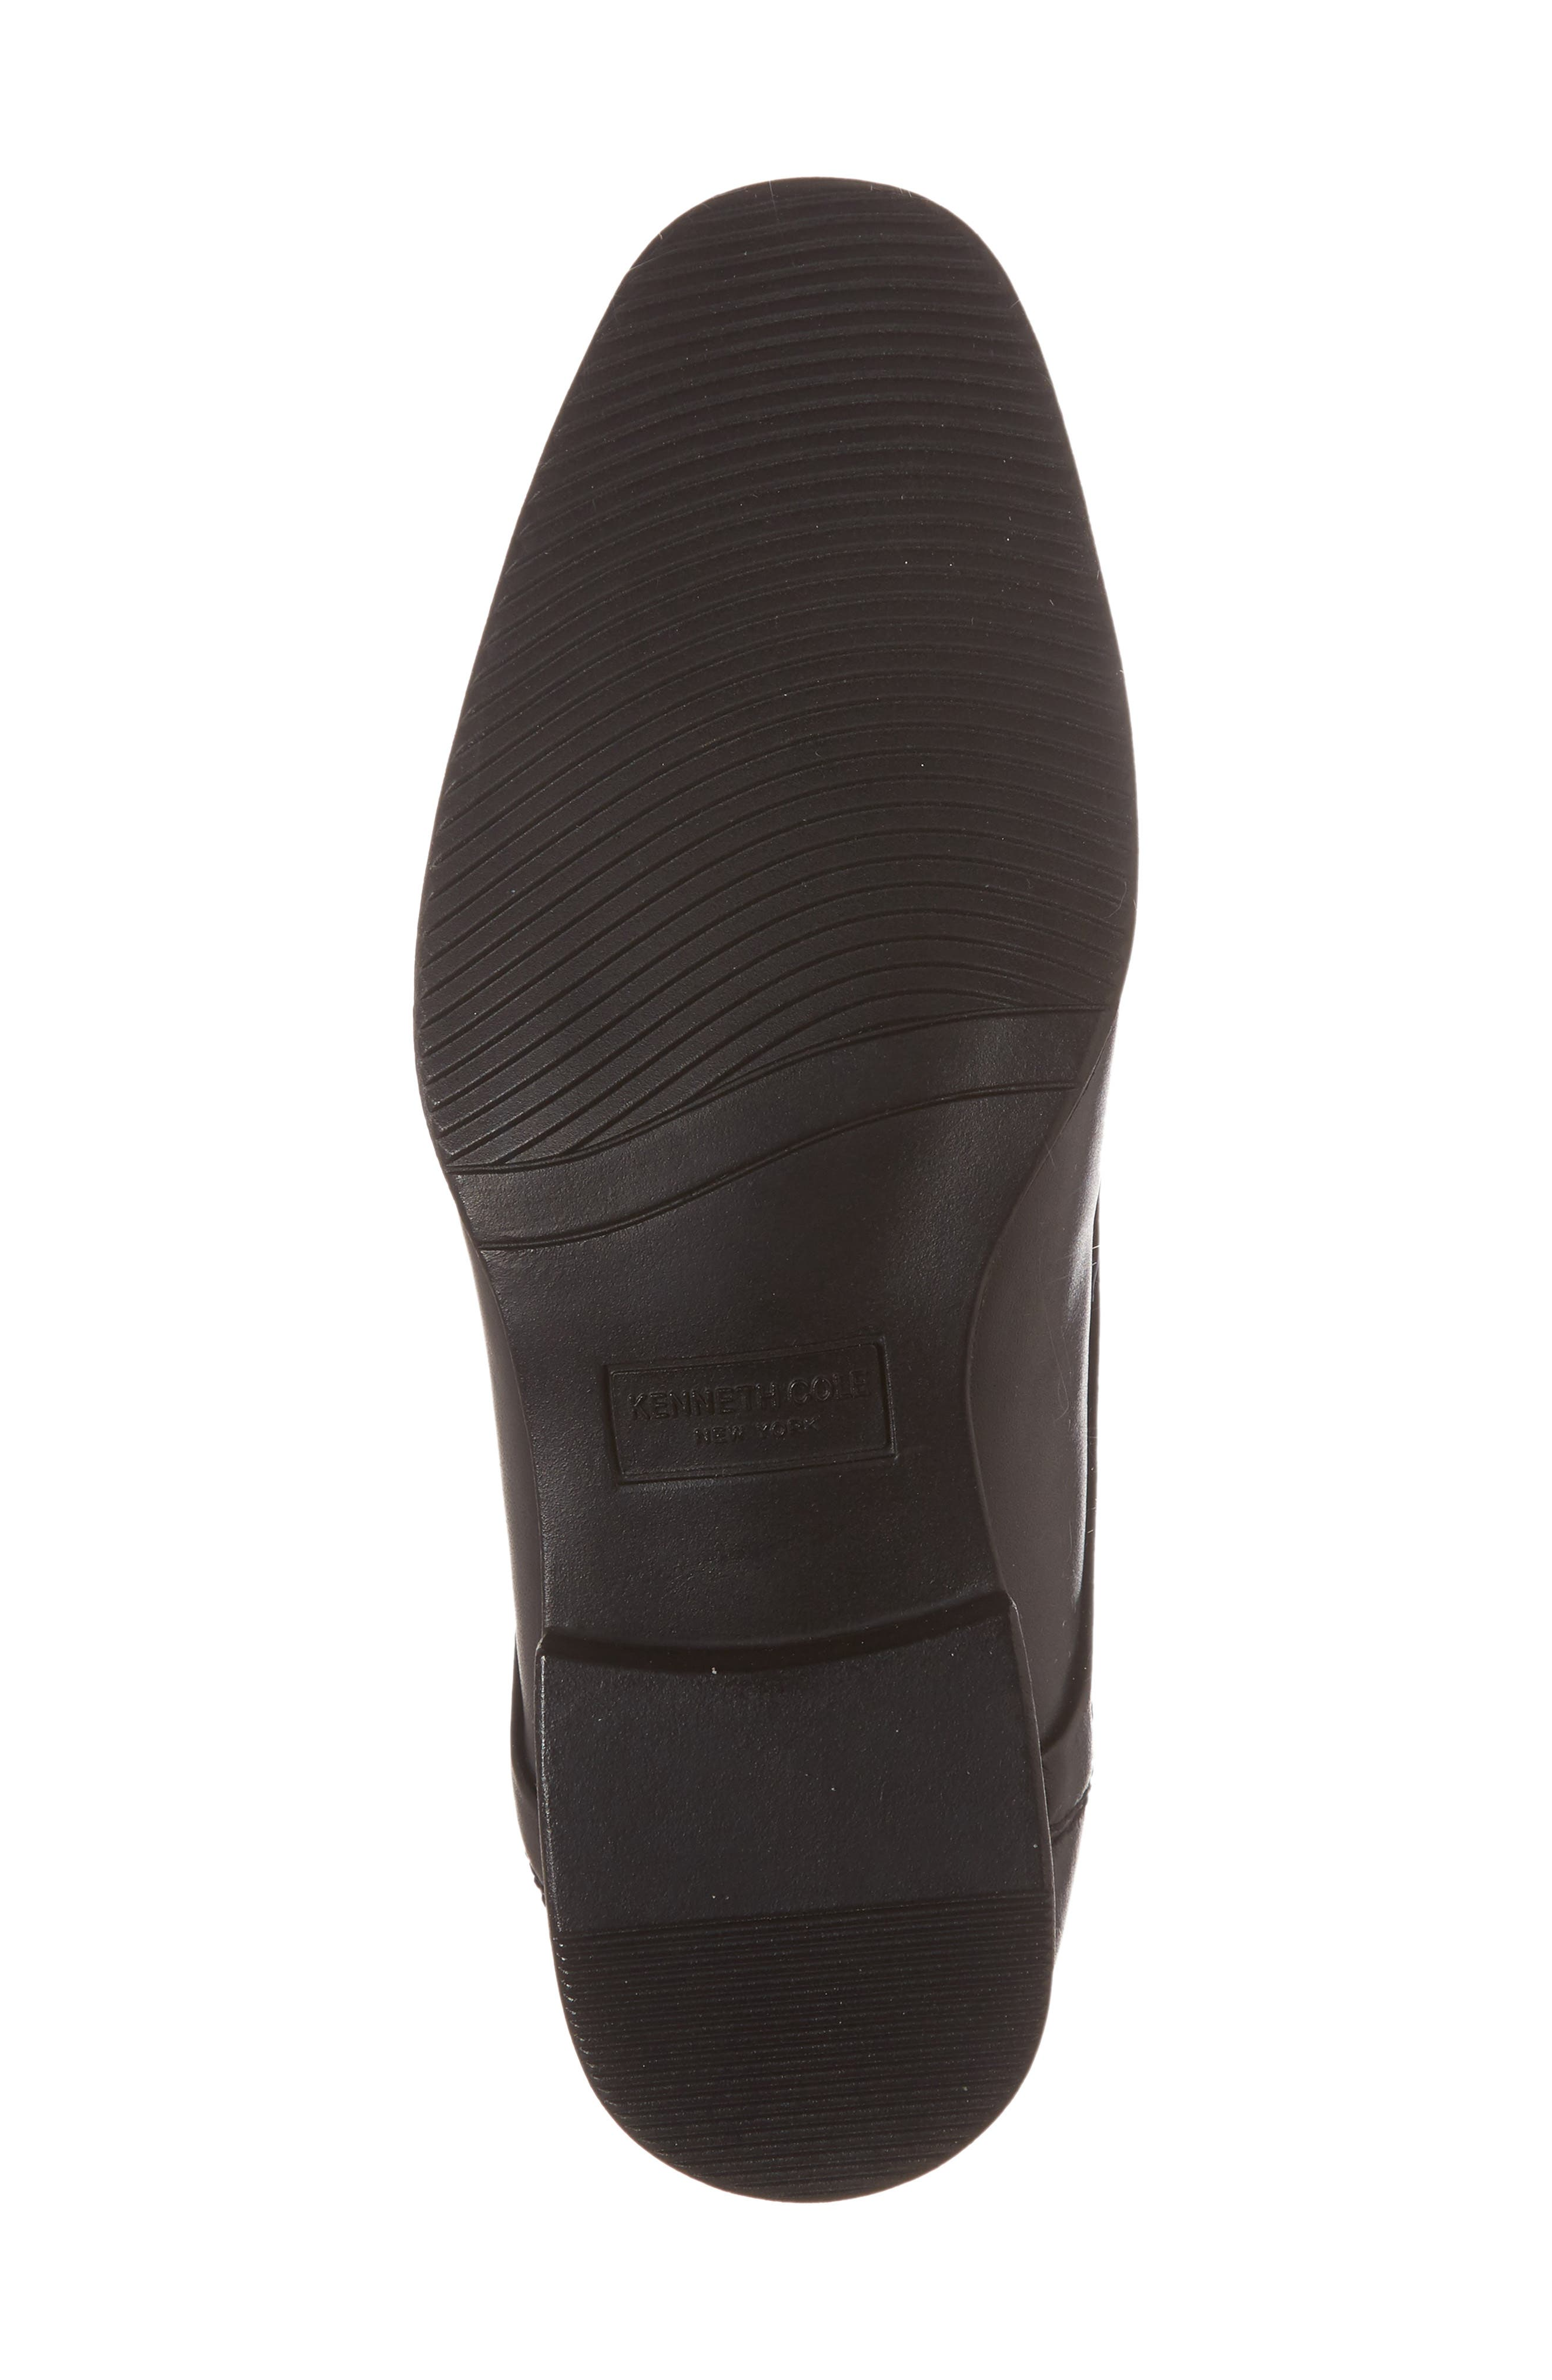 REACTION KENNETH COLE, Straight Line Derby, Alternate thumbnail 6, color, BLACK